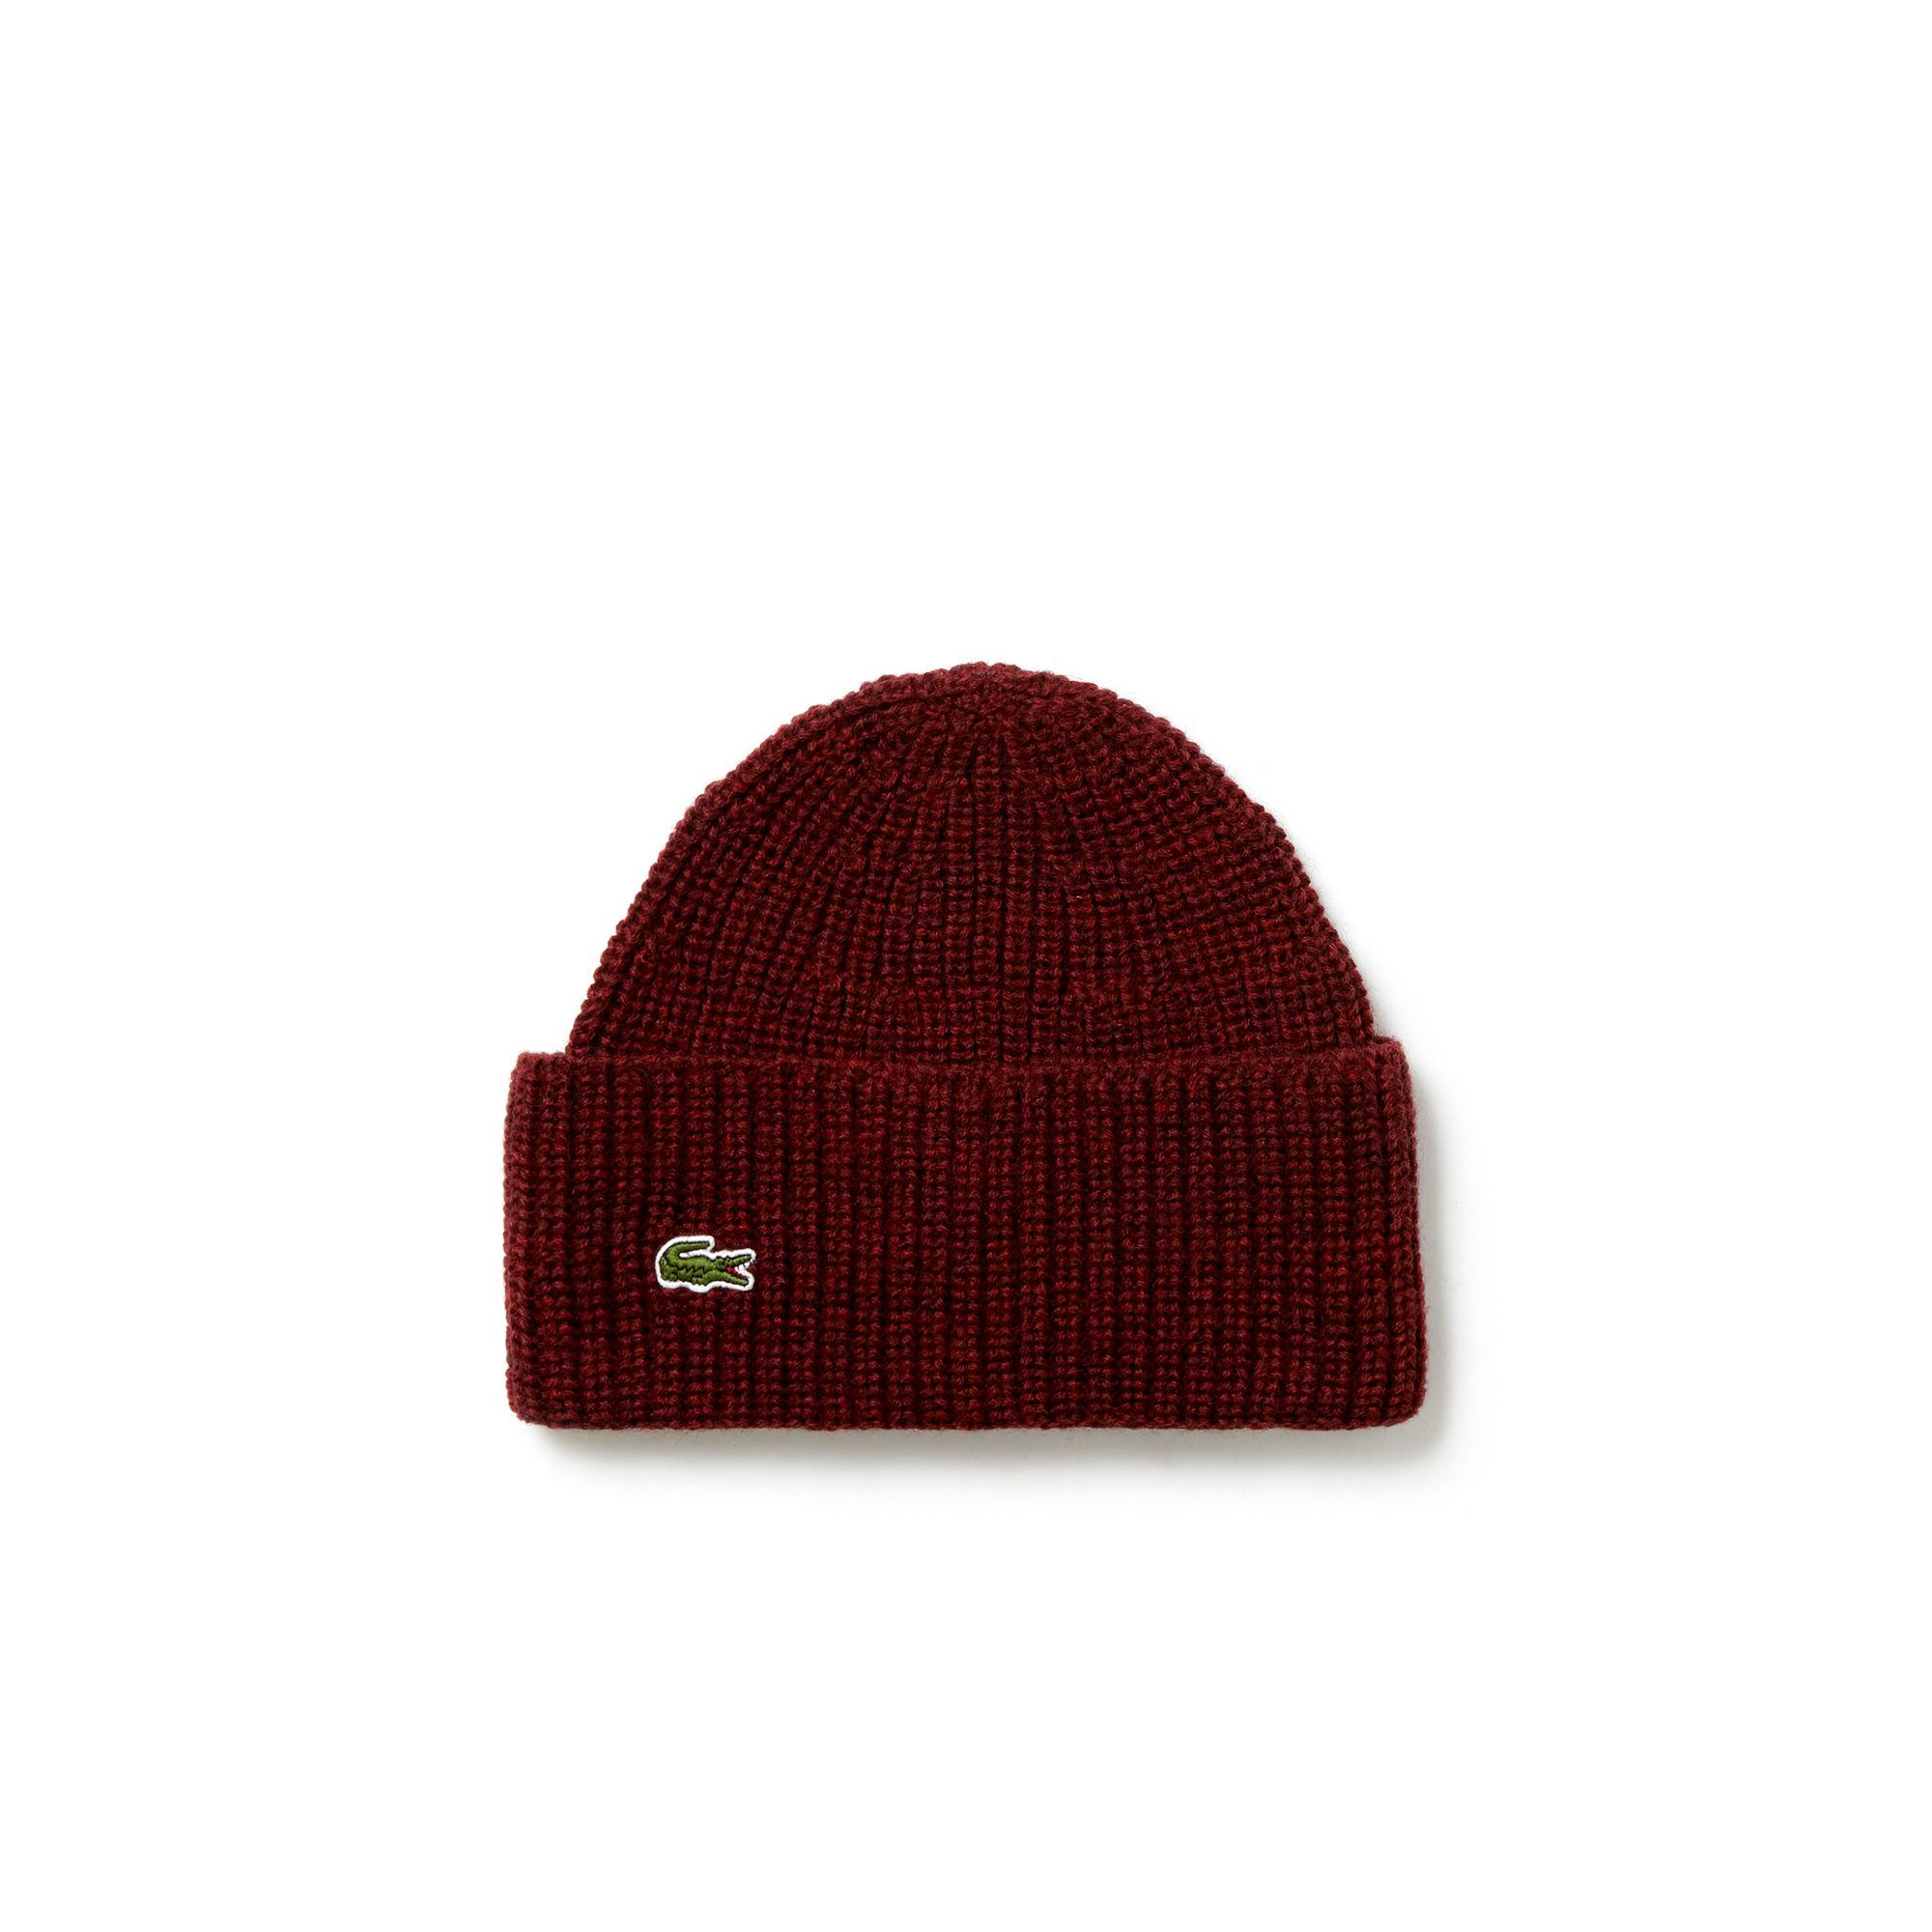 f6800677a Lyst - Lacoste Turned Edge Ribbed Wool Beanie in Red for Men - Save 3%